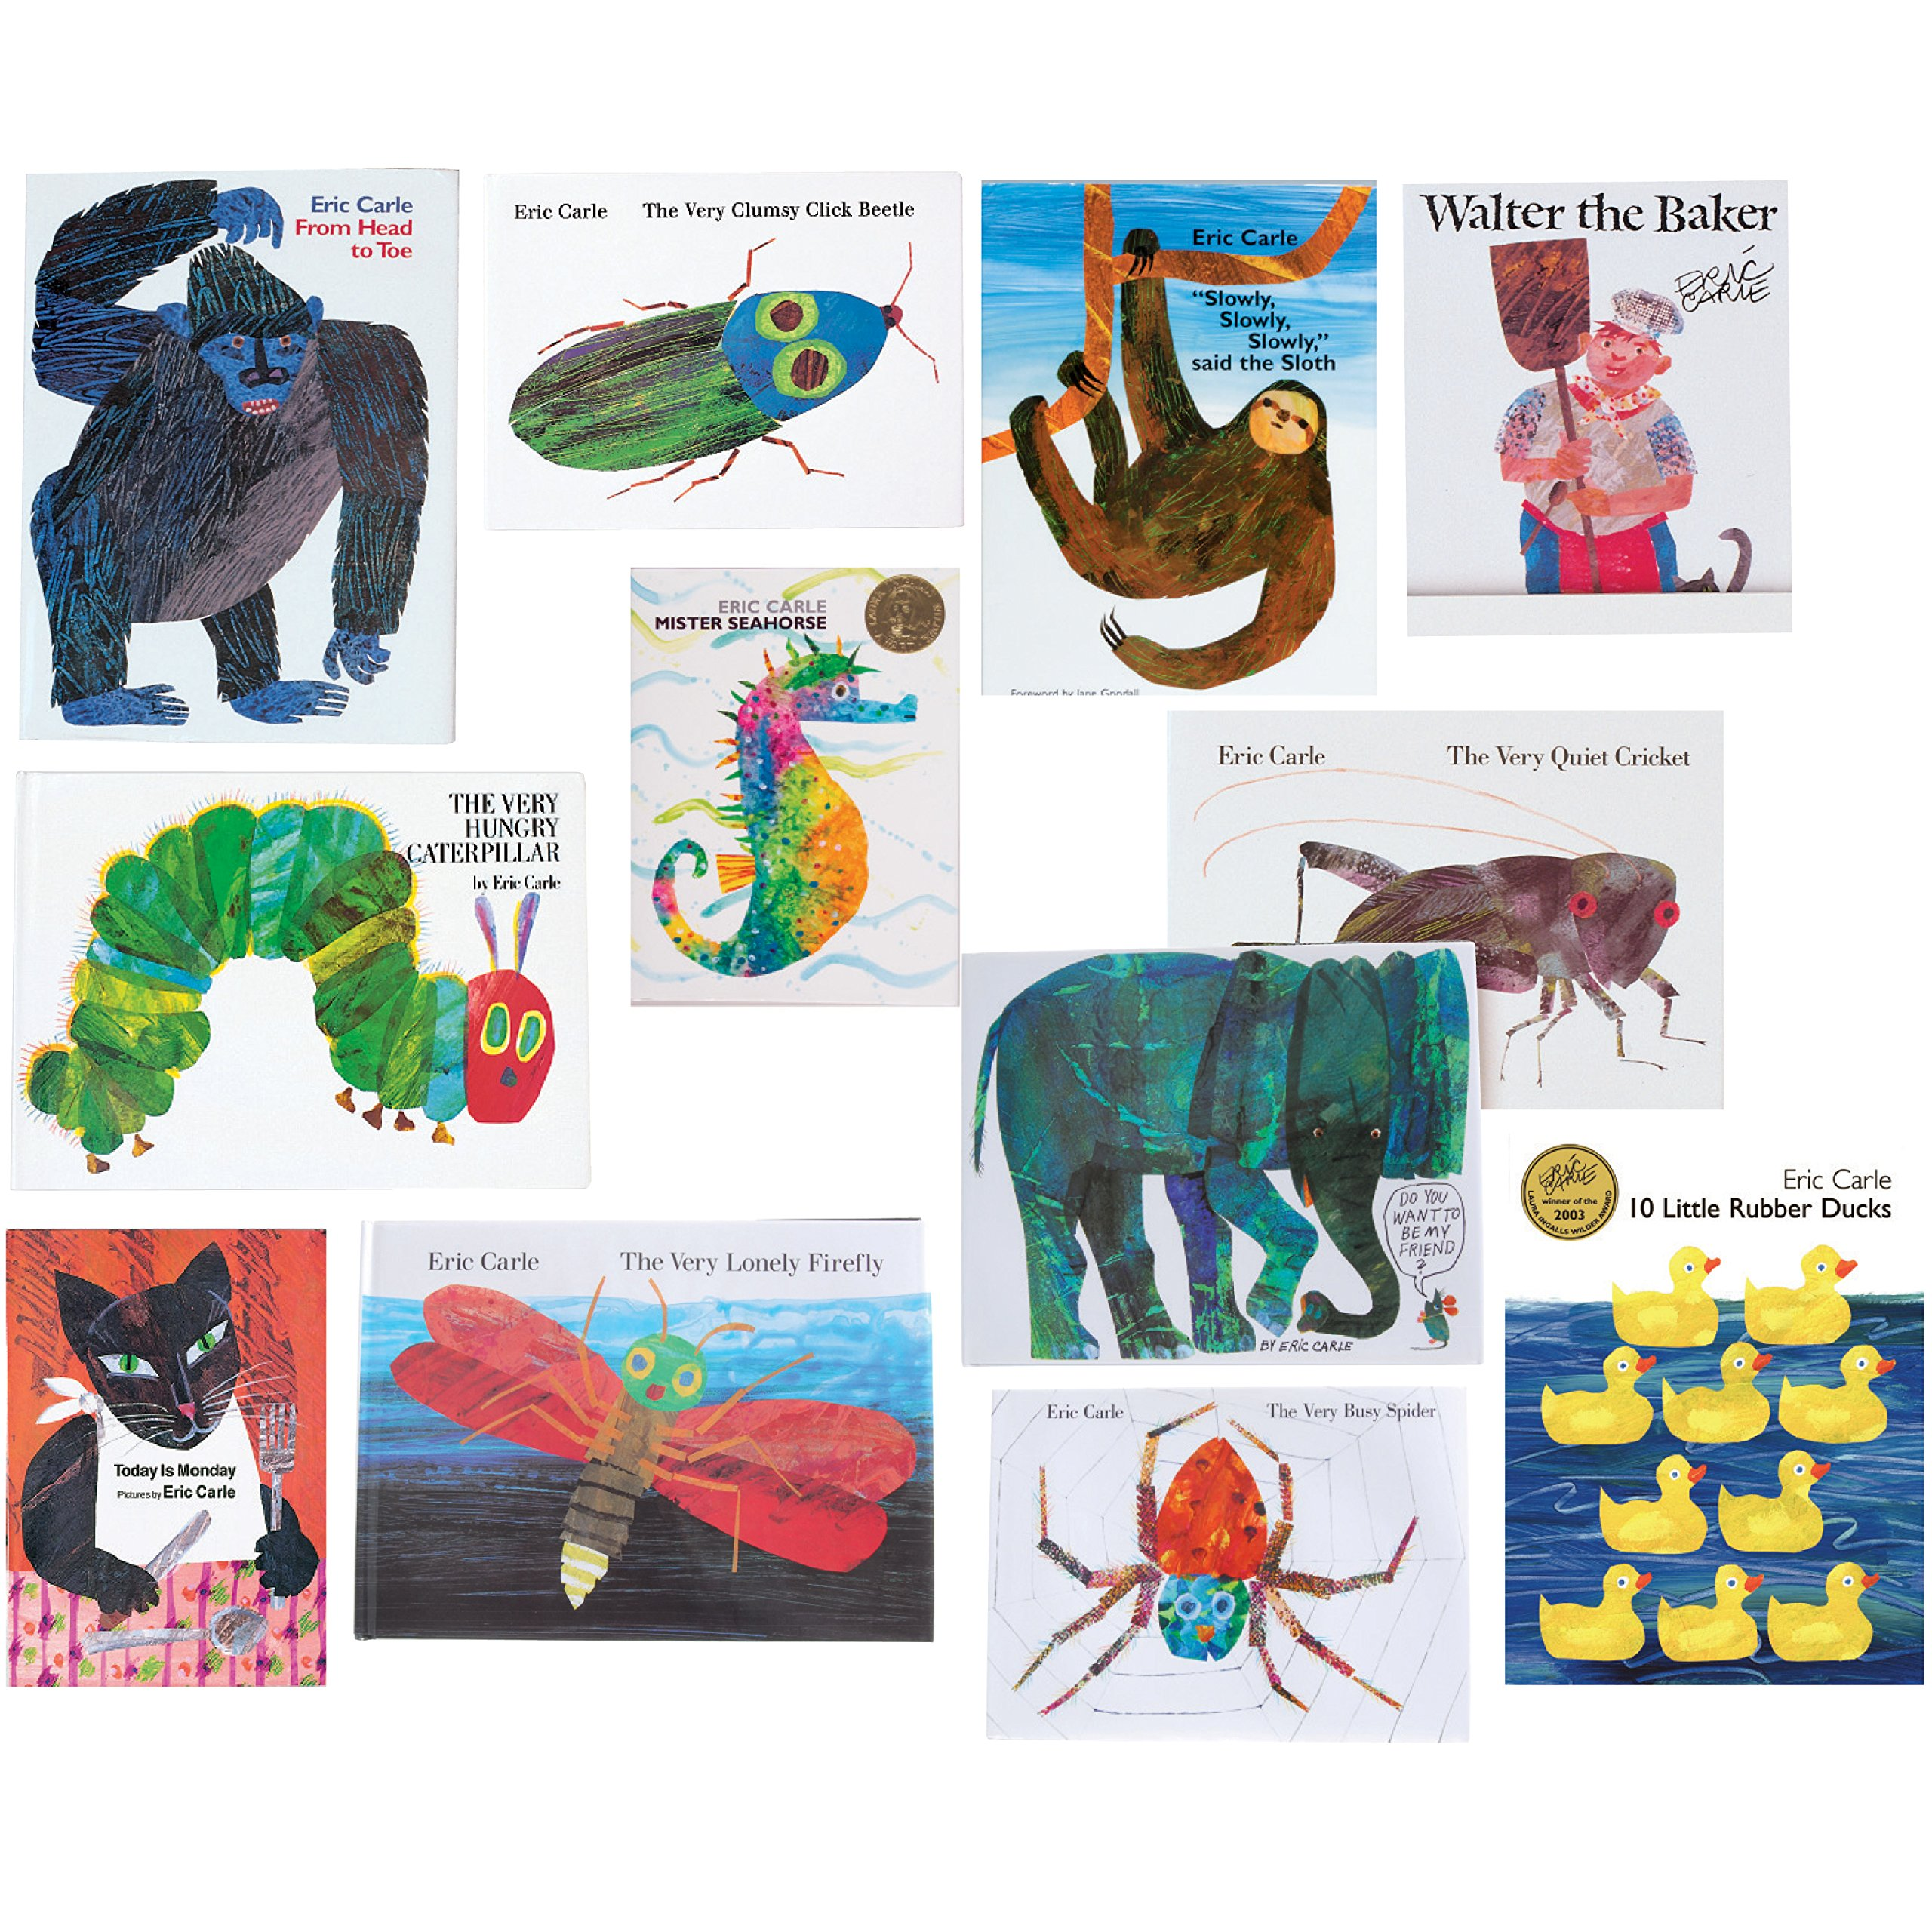 Constructive Playthings BOK-12 The Complete Eric Carle Collection Hardcover Books, Grade: Kindergarten to 1, Set of 12